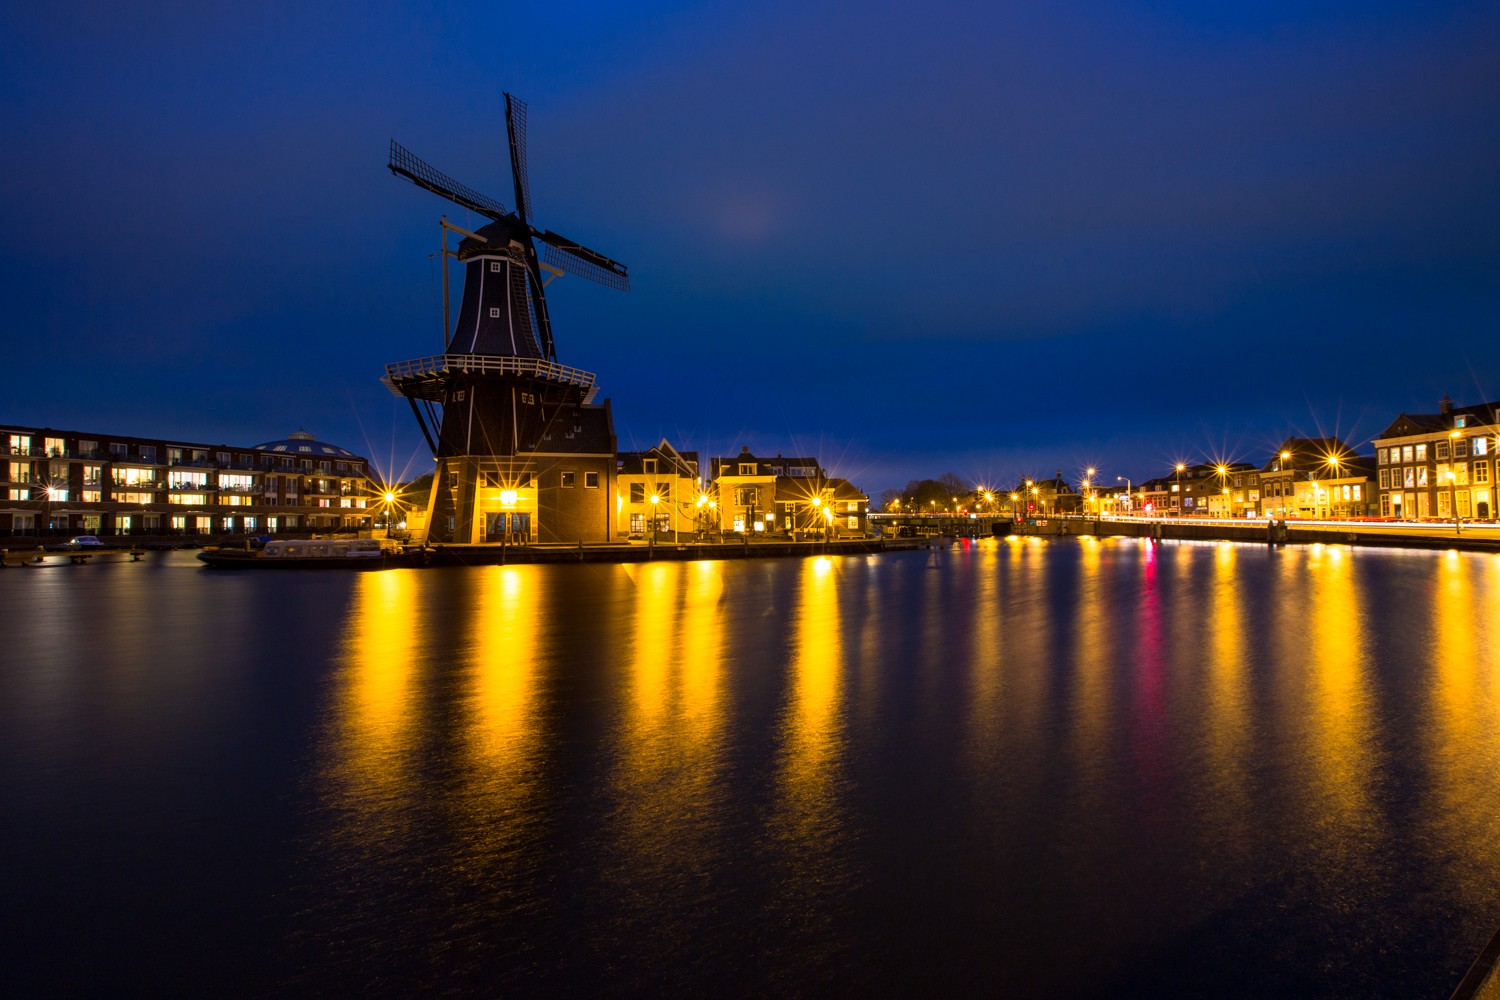 De Adriaan Windmill in the town of Haarlem in the Netherlands (Holland) at dusk.